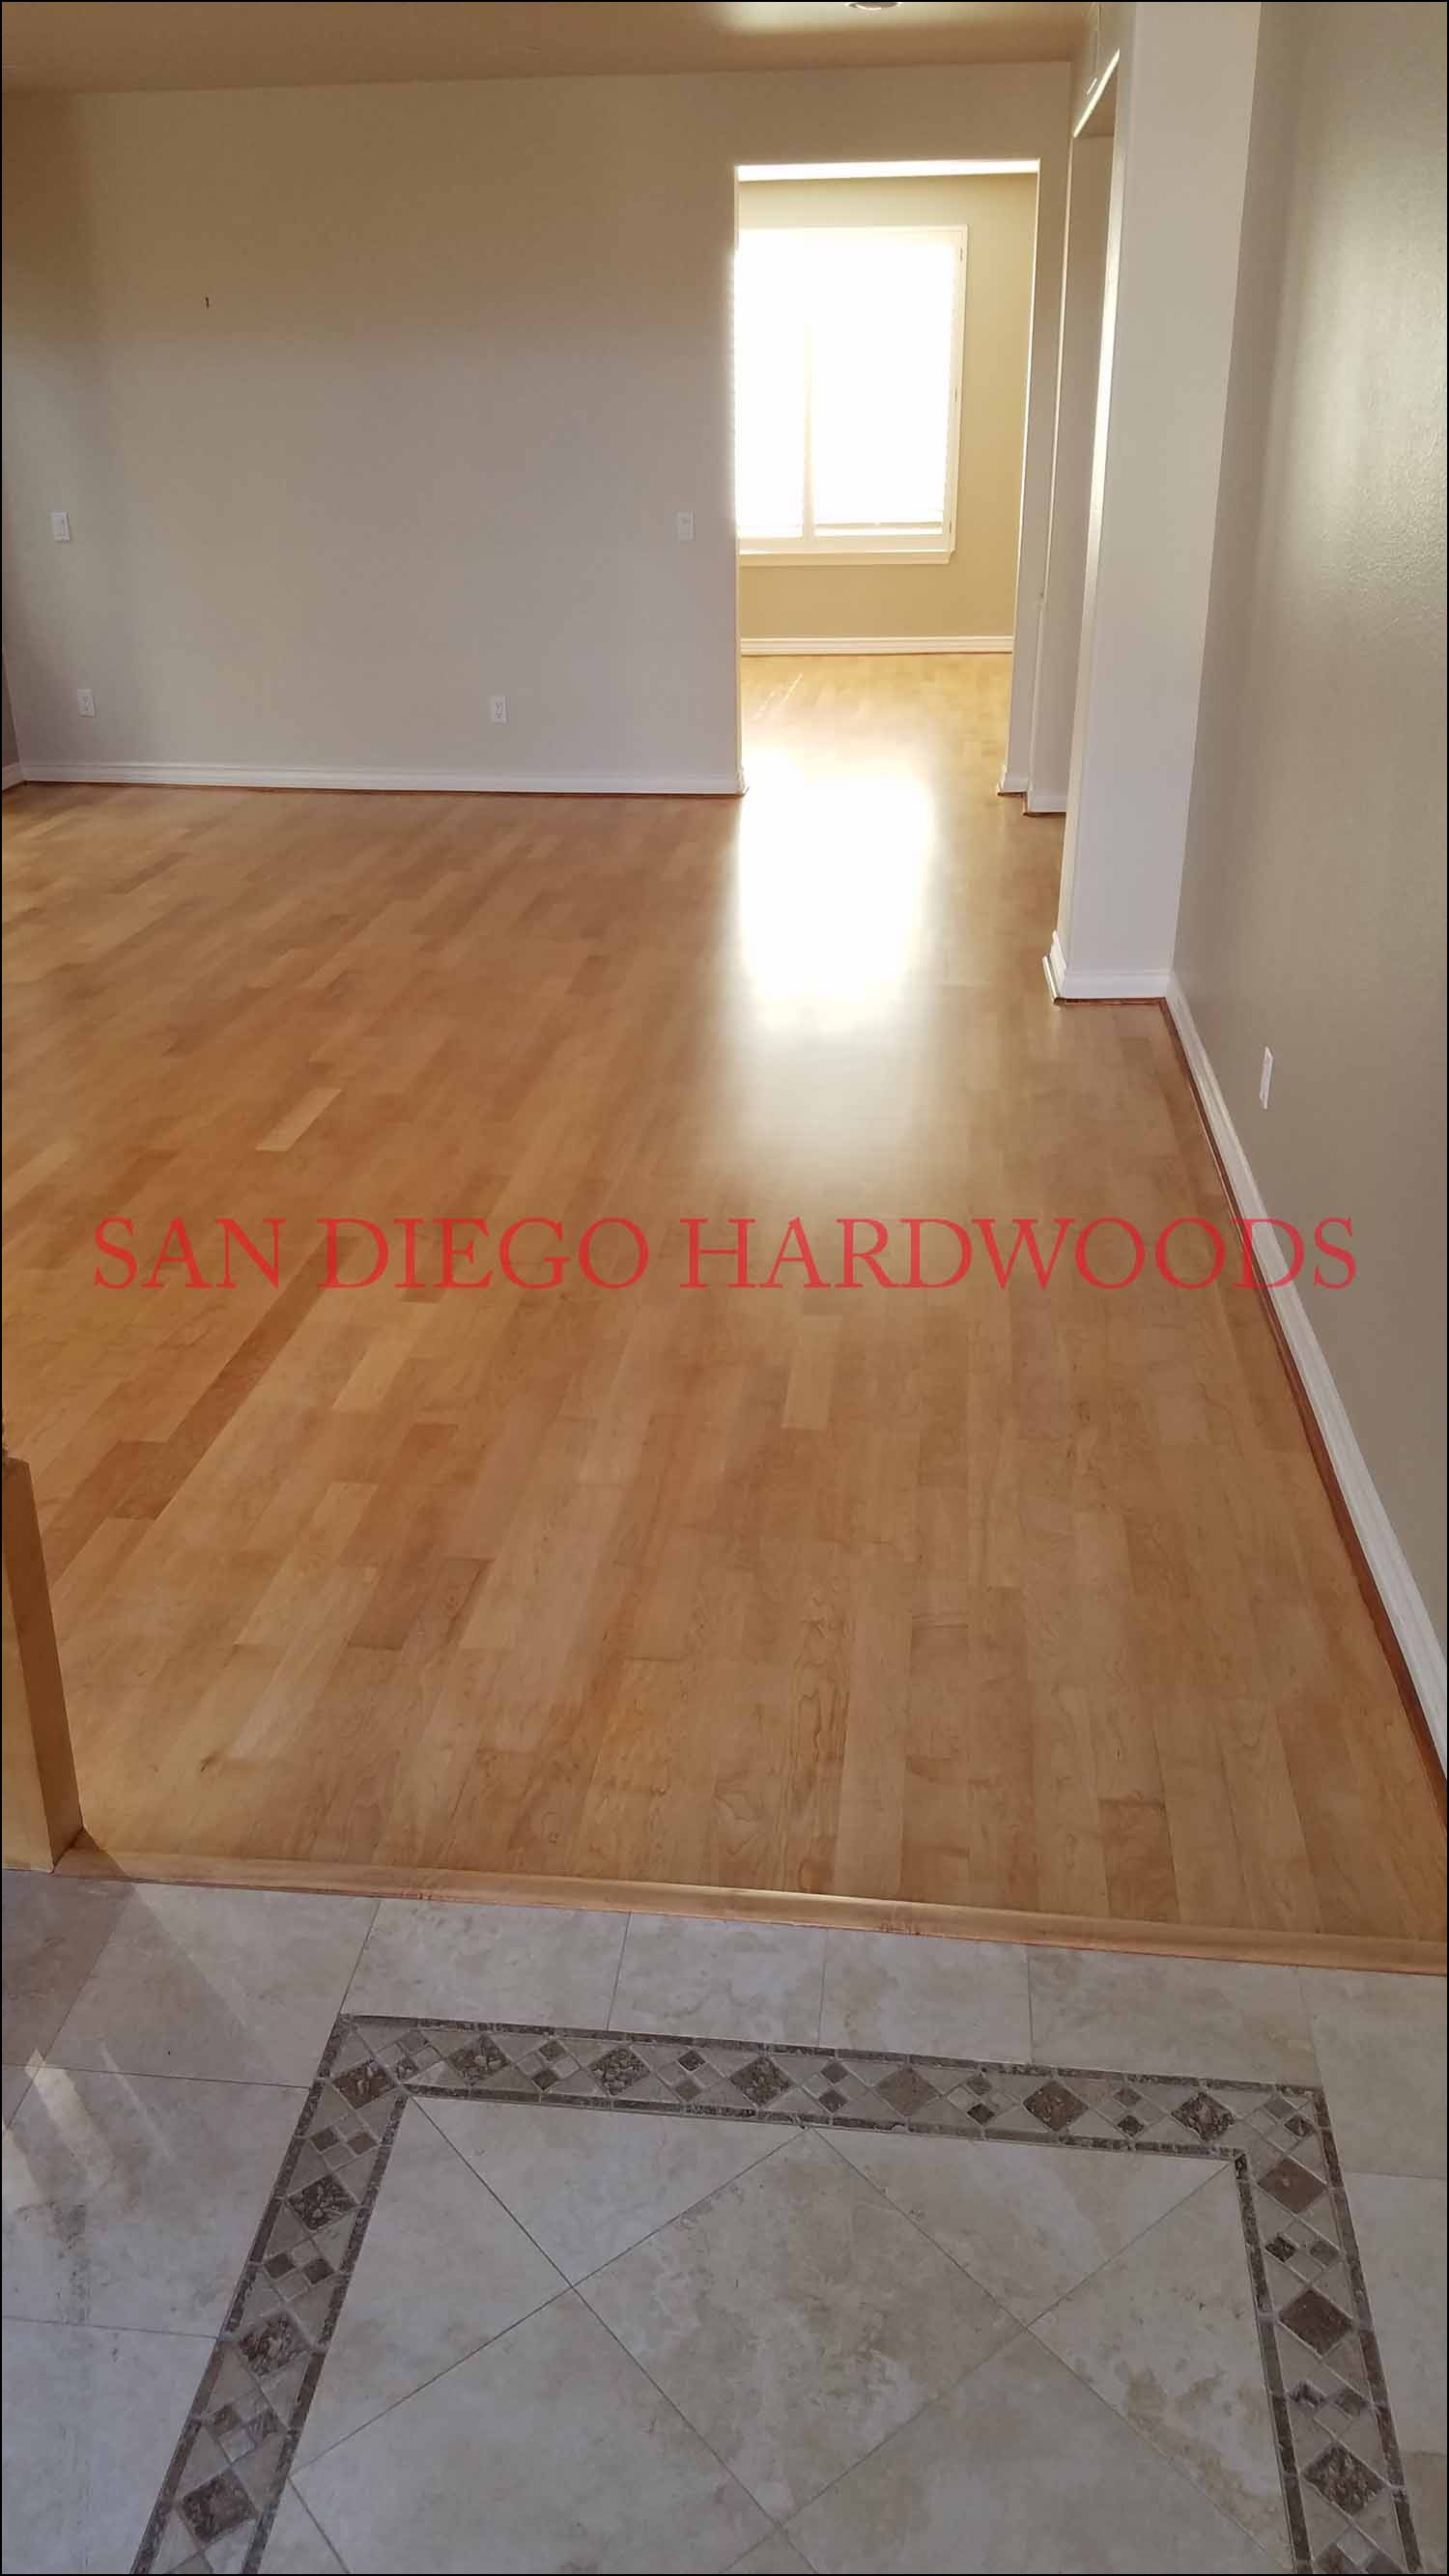 hardwood floor refinishing los angeles ca of hardwood flooring suppliers france flooring ideas within hardwood flooring installation san diego images san diego hardwood floor restoration 858 699 0072 licensed of